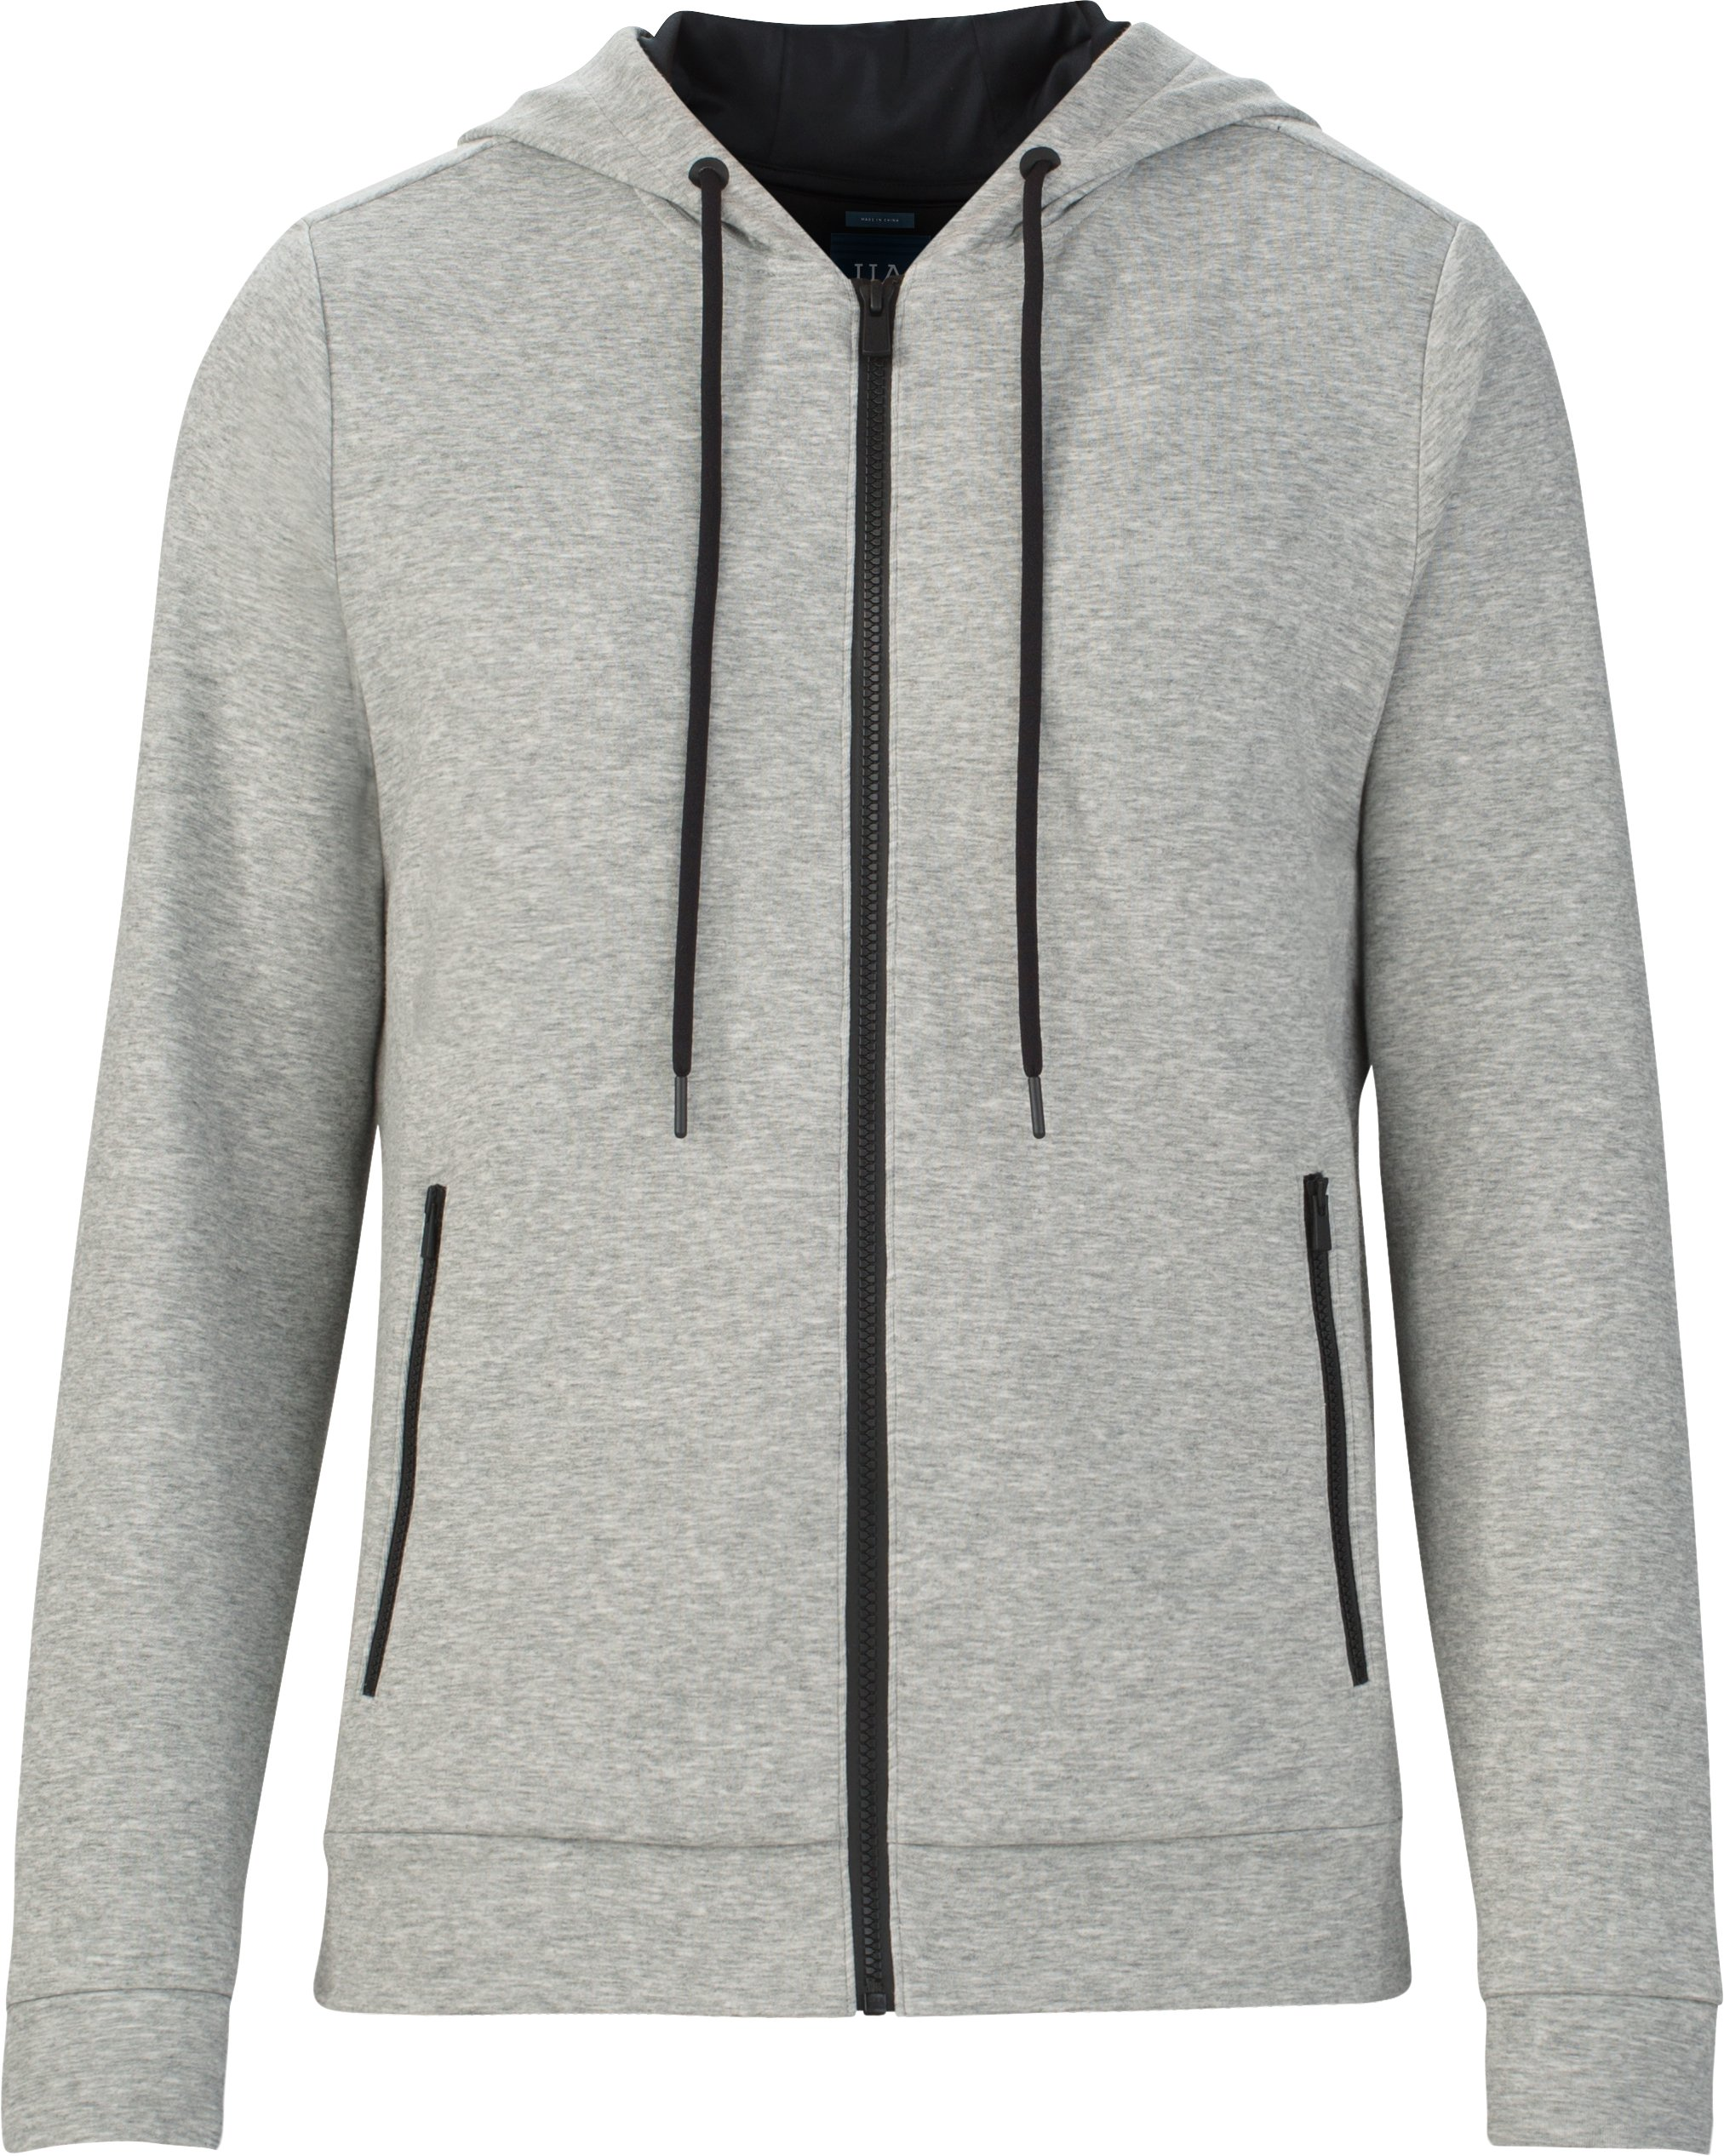 Men's UAS Tailgate Full Zip Hoodie, LIGHT HEATHER GRAY